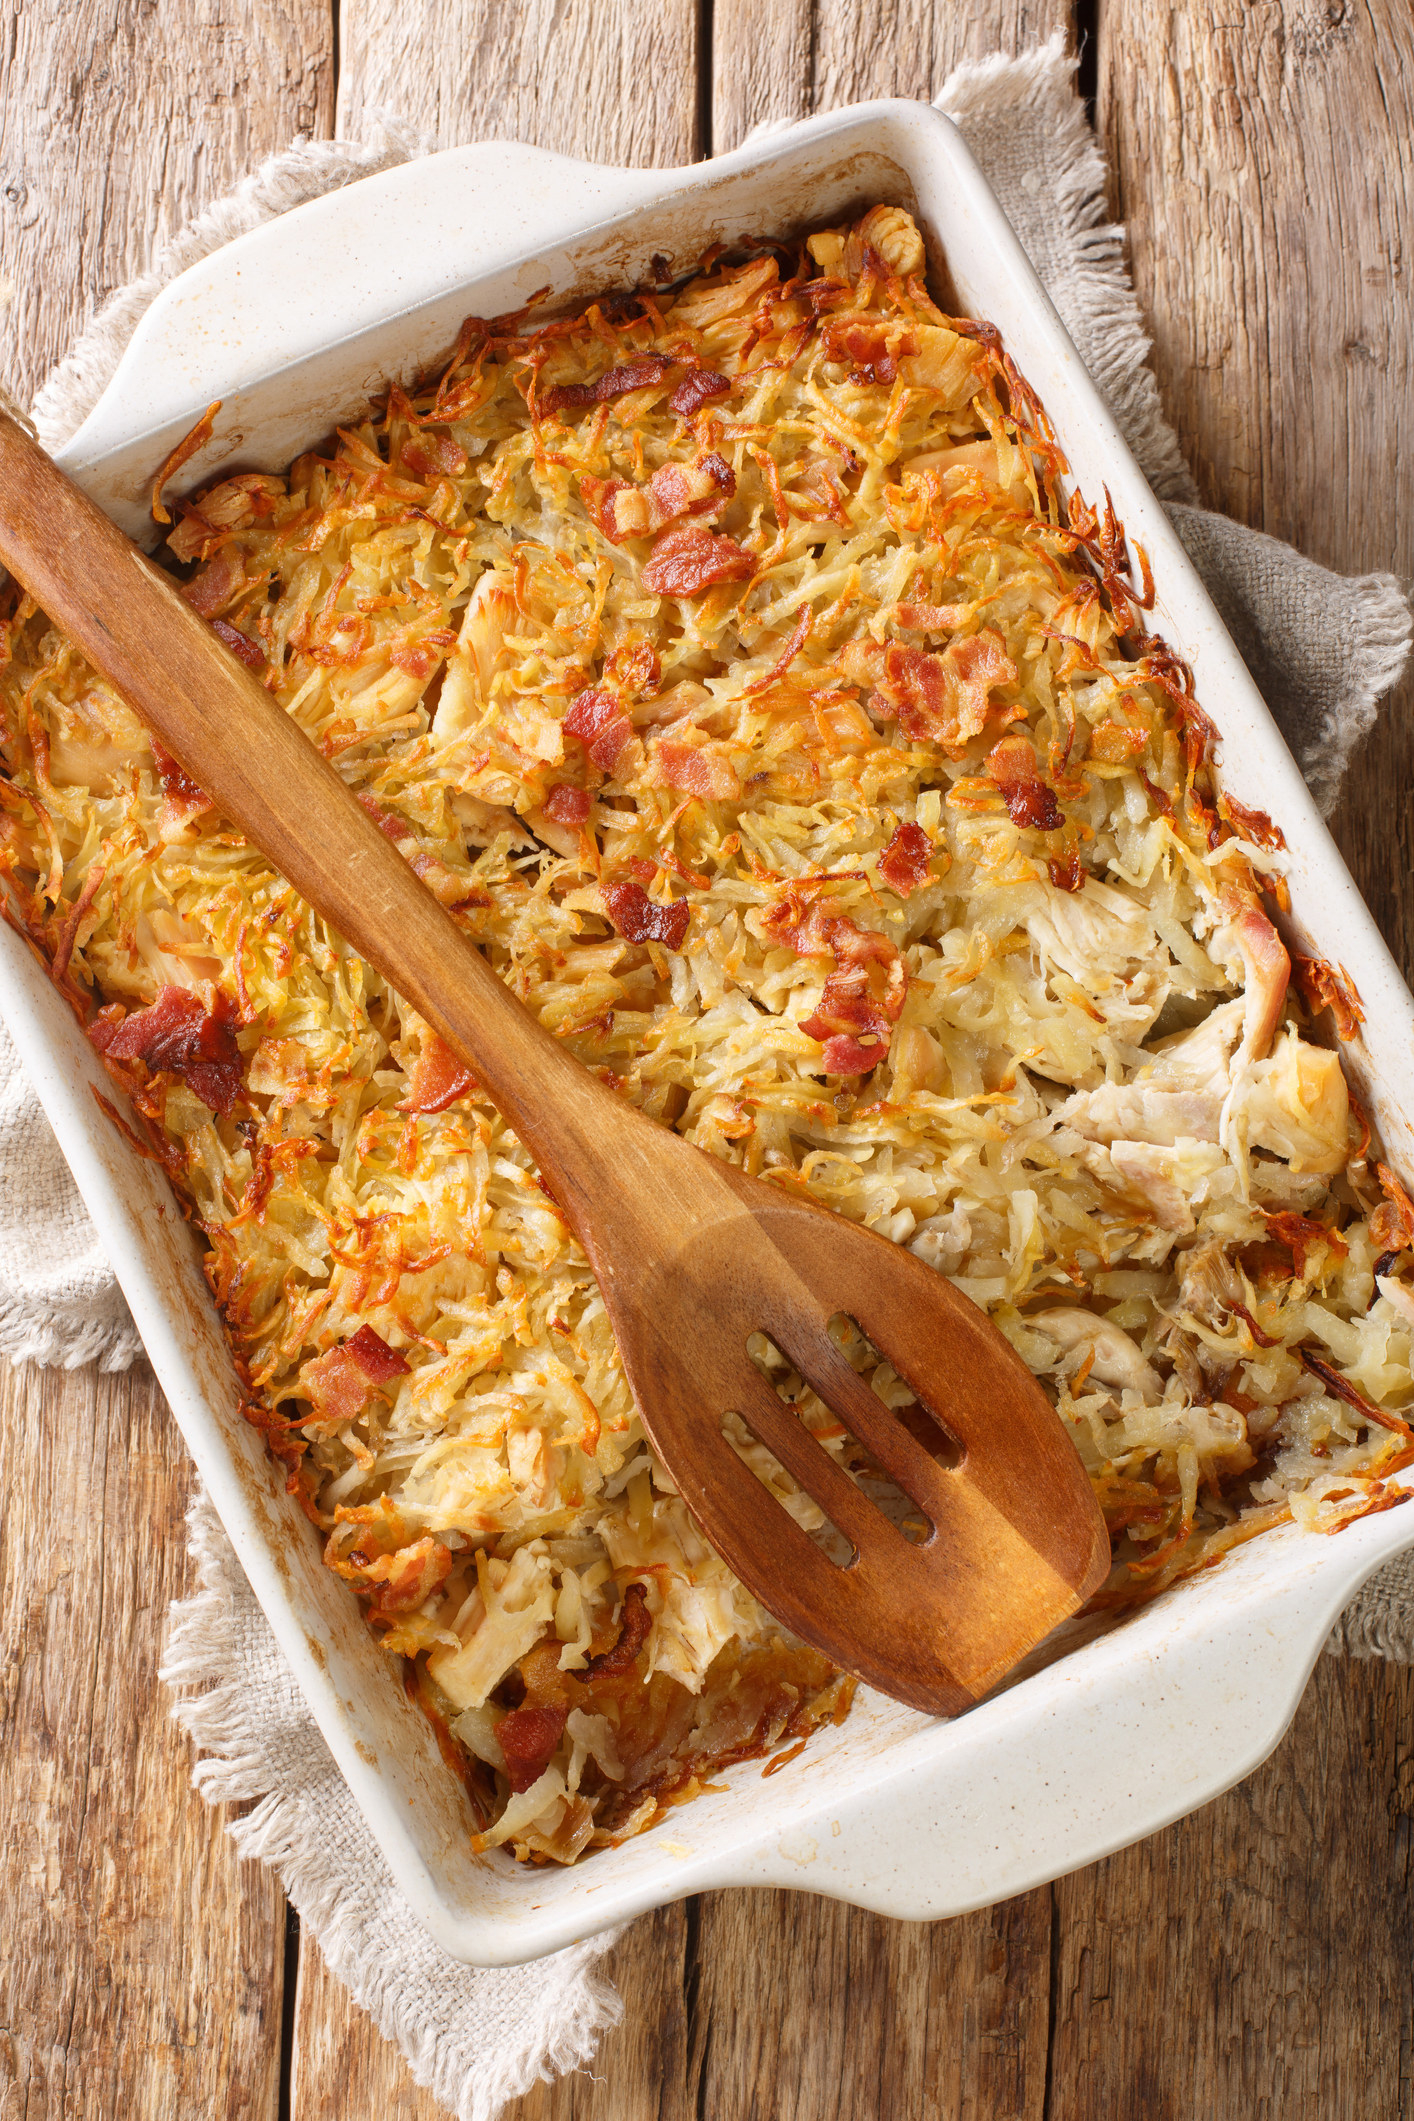 Photo of a cooked potato-chicken mix in a casserole dish.